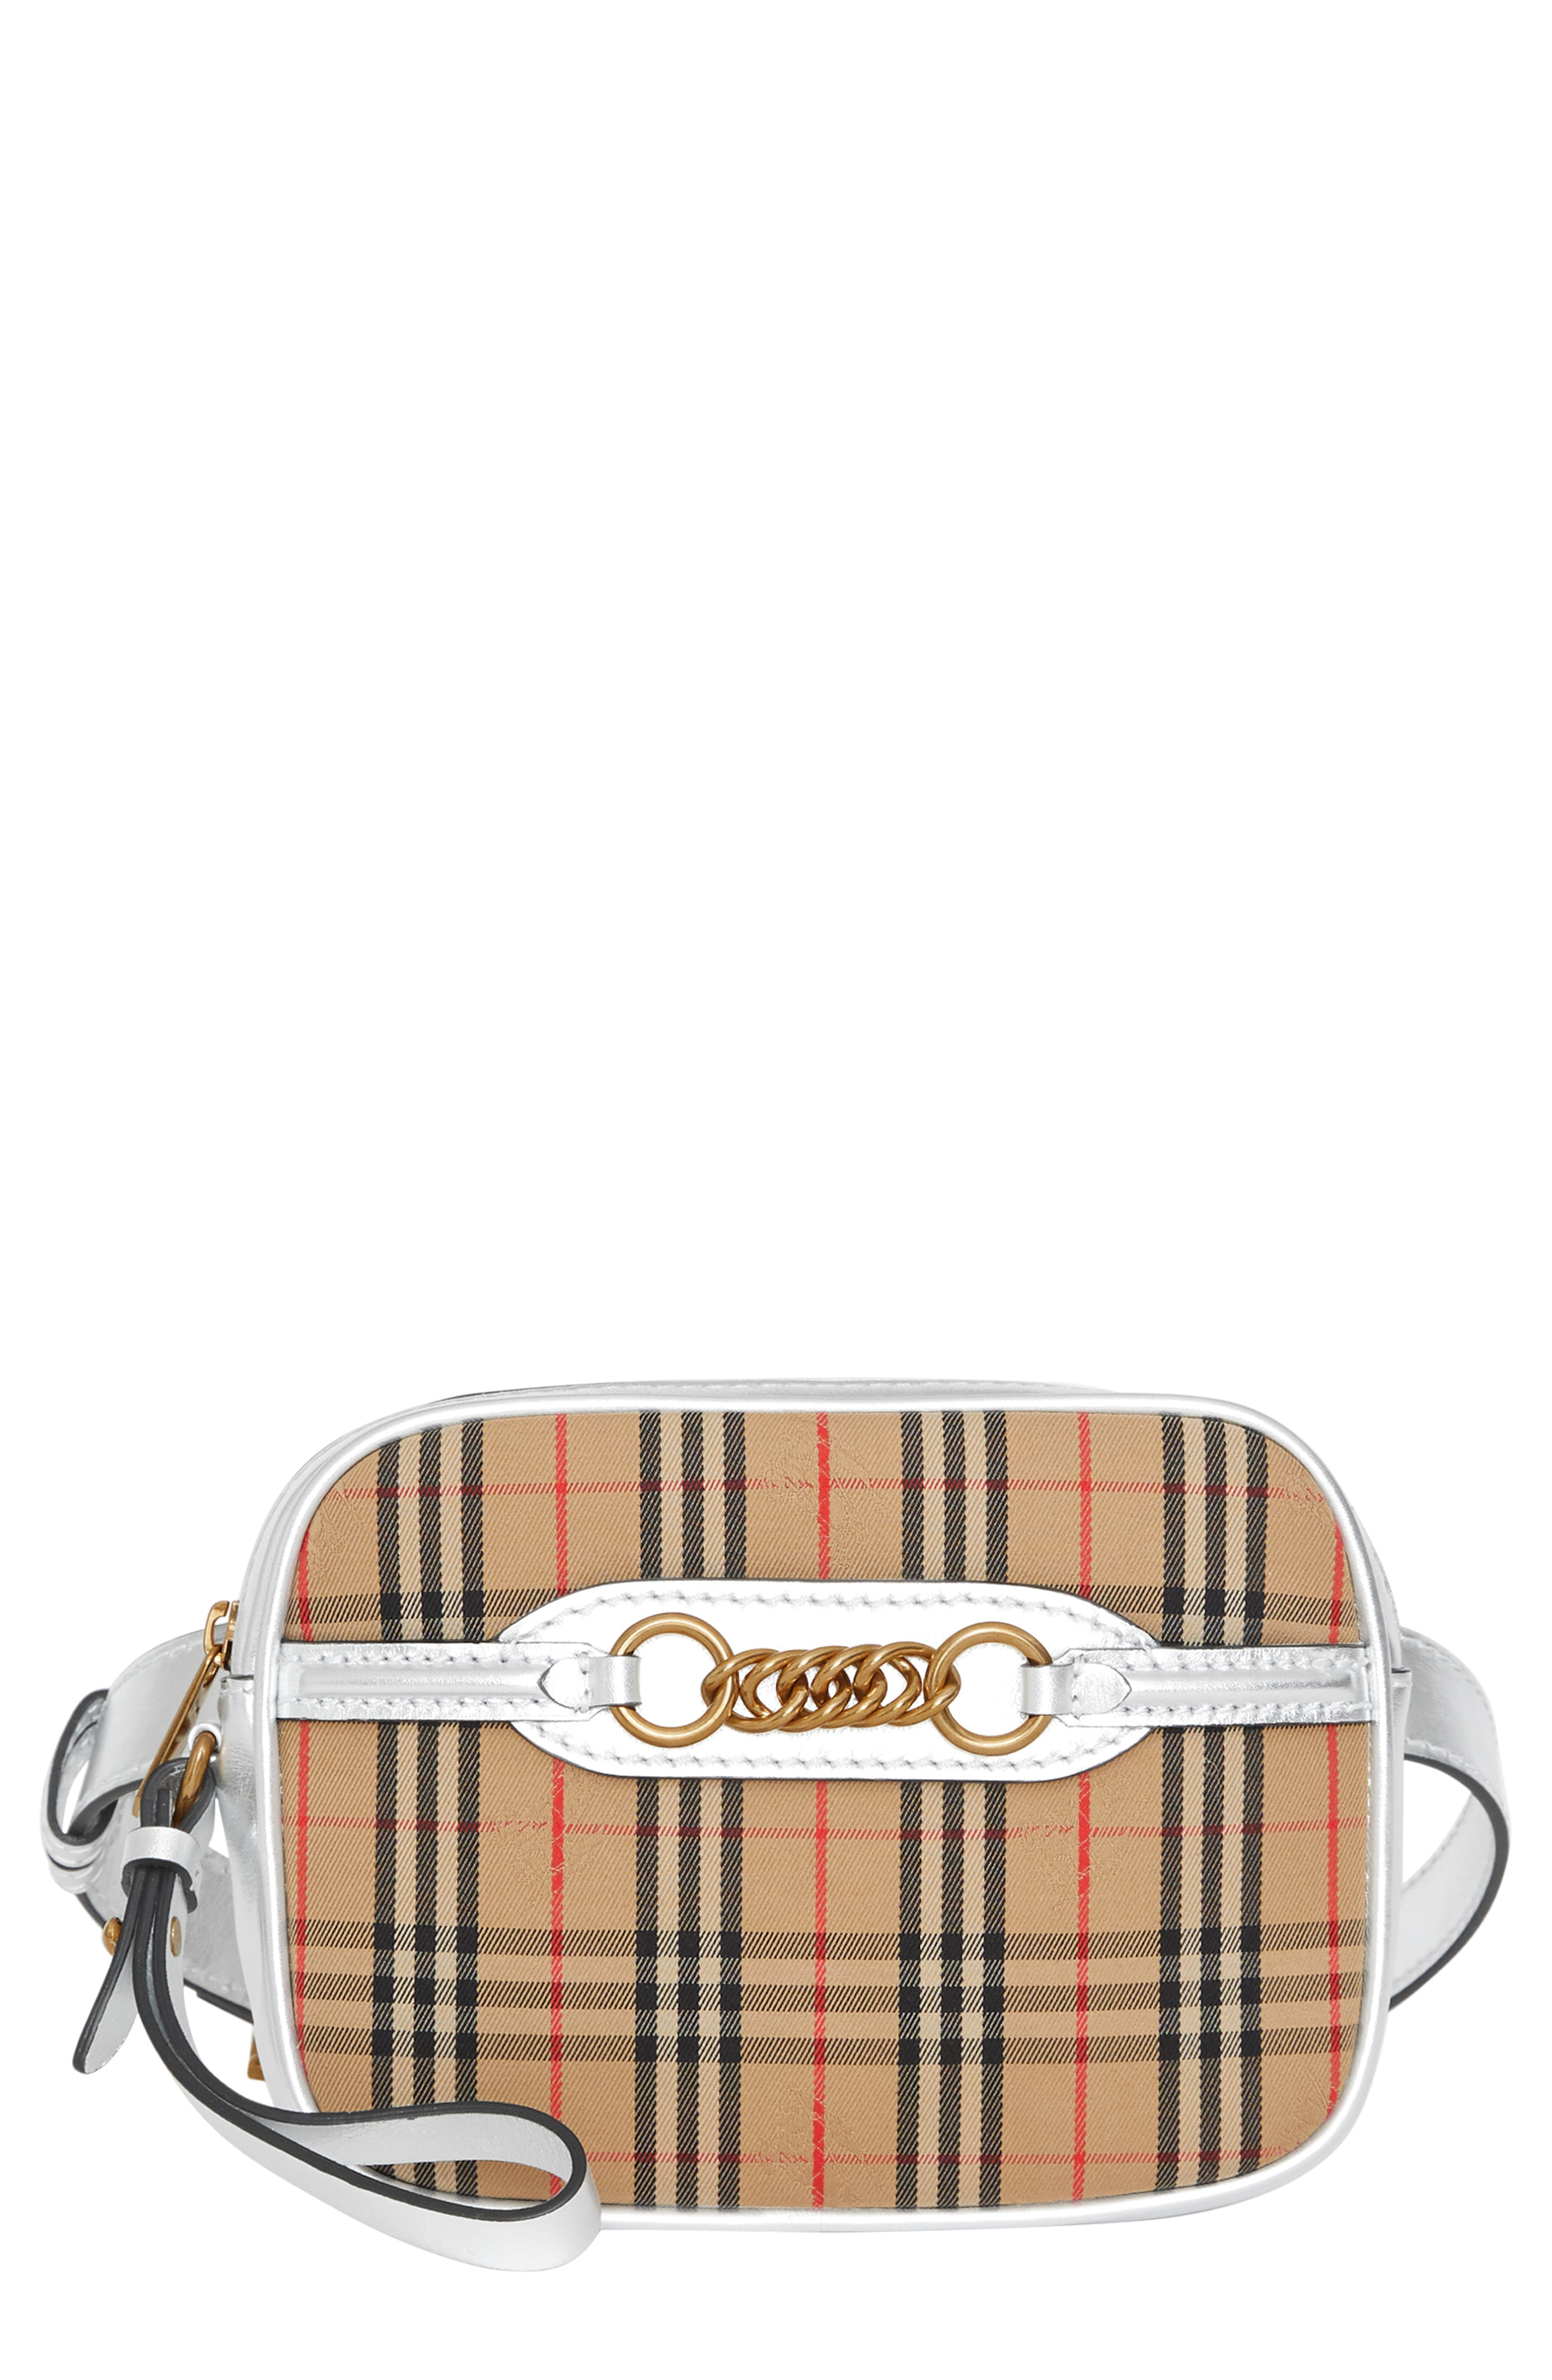 fb67528d8a Burberry The 1983 Check Link Bum Bag With Leather Trim In Neutrals ...